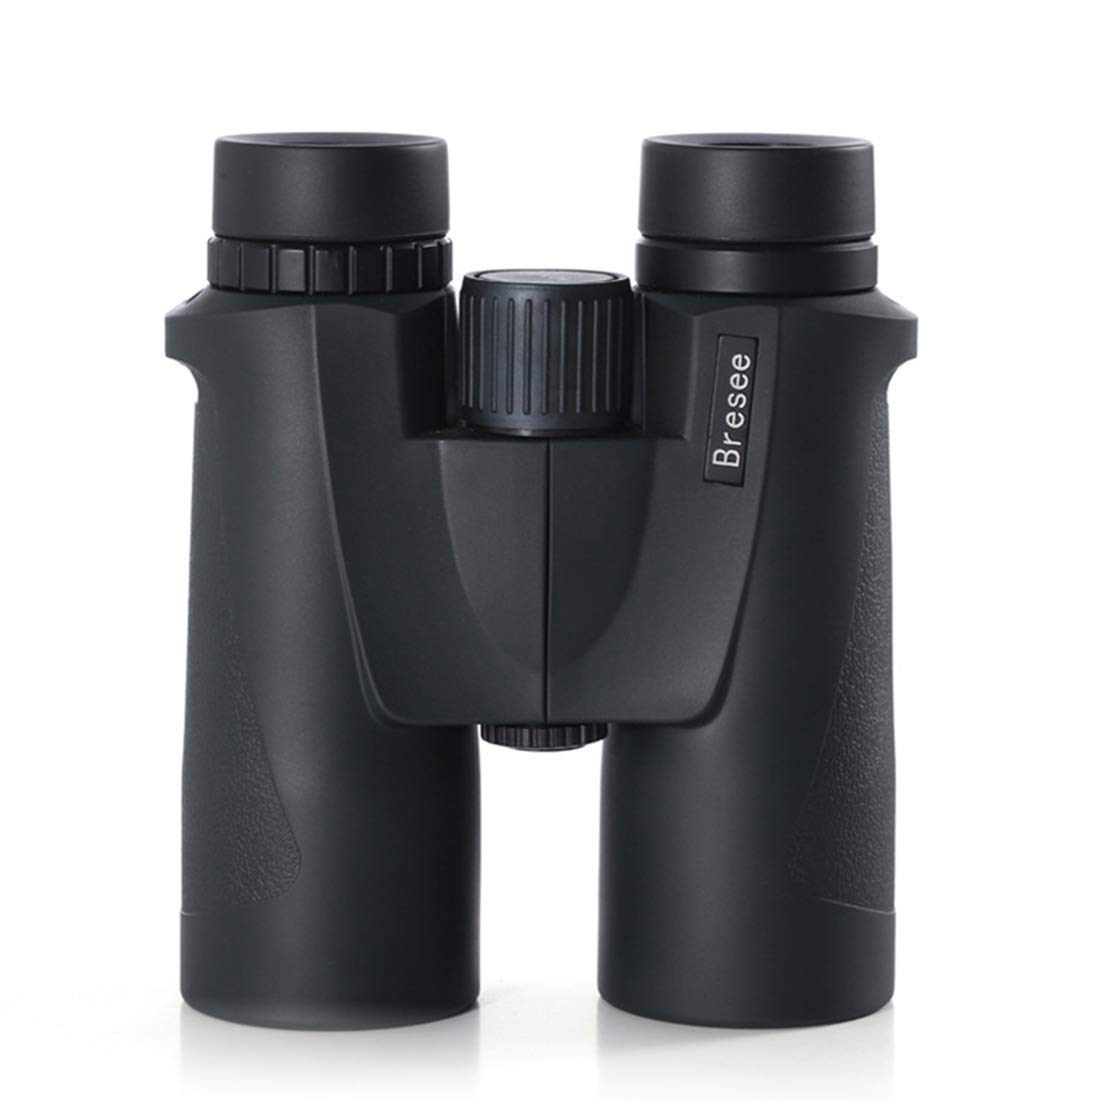 GRJWYJ Binoculars, Portable High Power 10x42 HD Portable, Outdoor, Wide Field of View, Adult Kids Watching Birds Outdoors, Fishing, Hiking, Traveling, Hunting, Best Choice by GRJWYJ